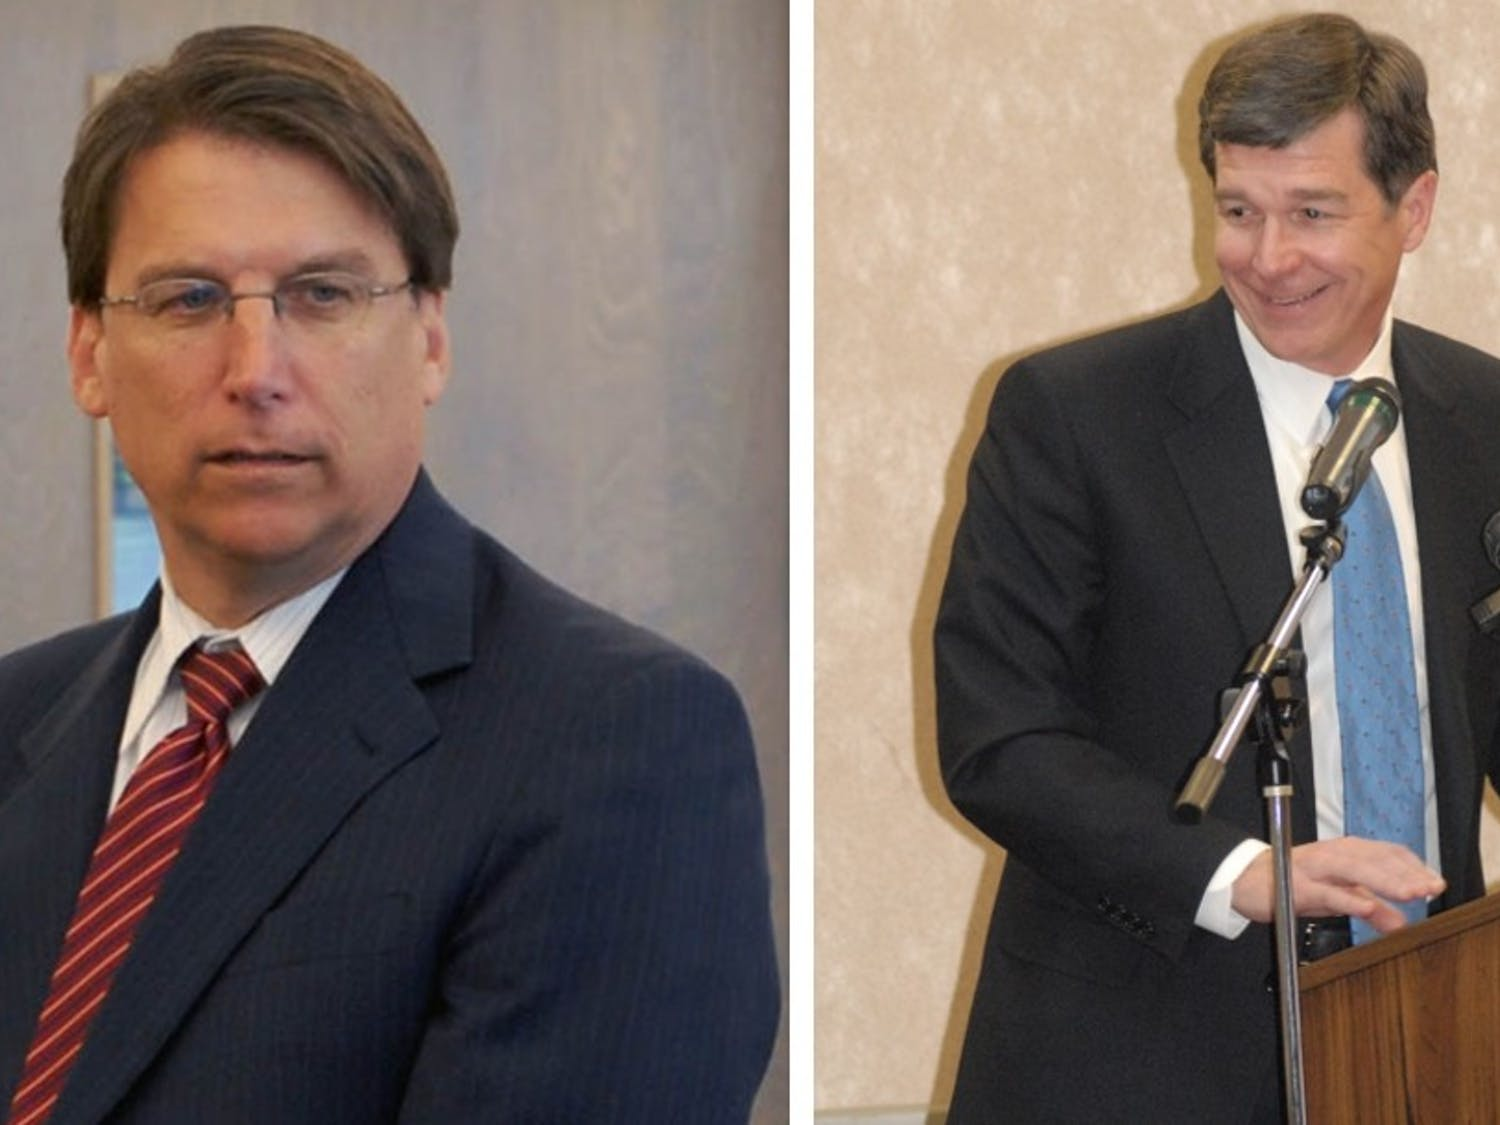 Governor Pat McCrory (left) formally conceded the gubernatorialrace to Democrat Roy Cooper (right).